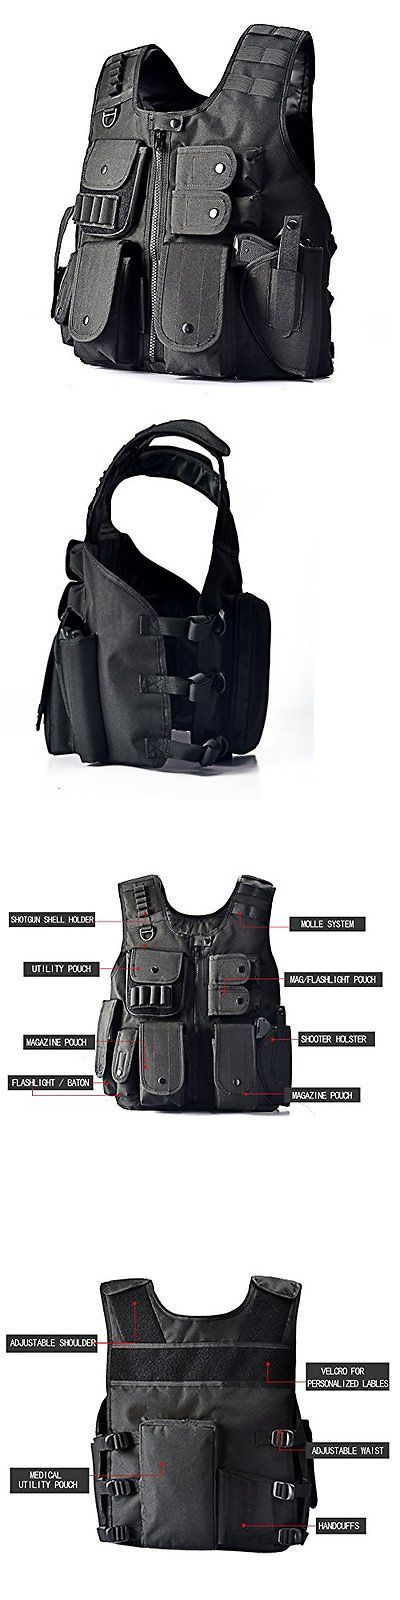 Chest Rigs and Tactical Vests 177891: Military Tactical Vest Swat Enhanced Molle Carrier Combat Gear Police Black Ammo -> BUY IT NOW ONLY: $38.75 on eBay!